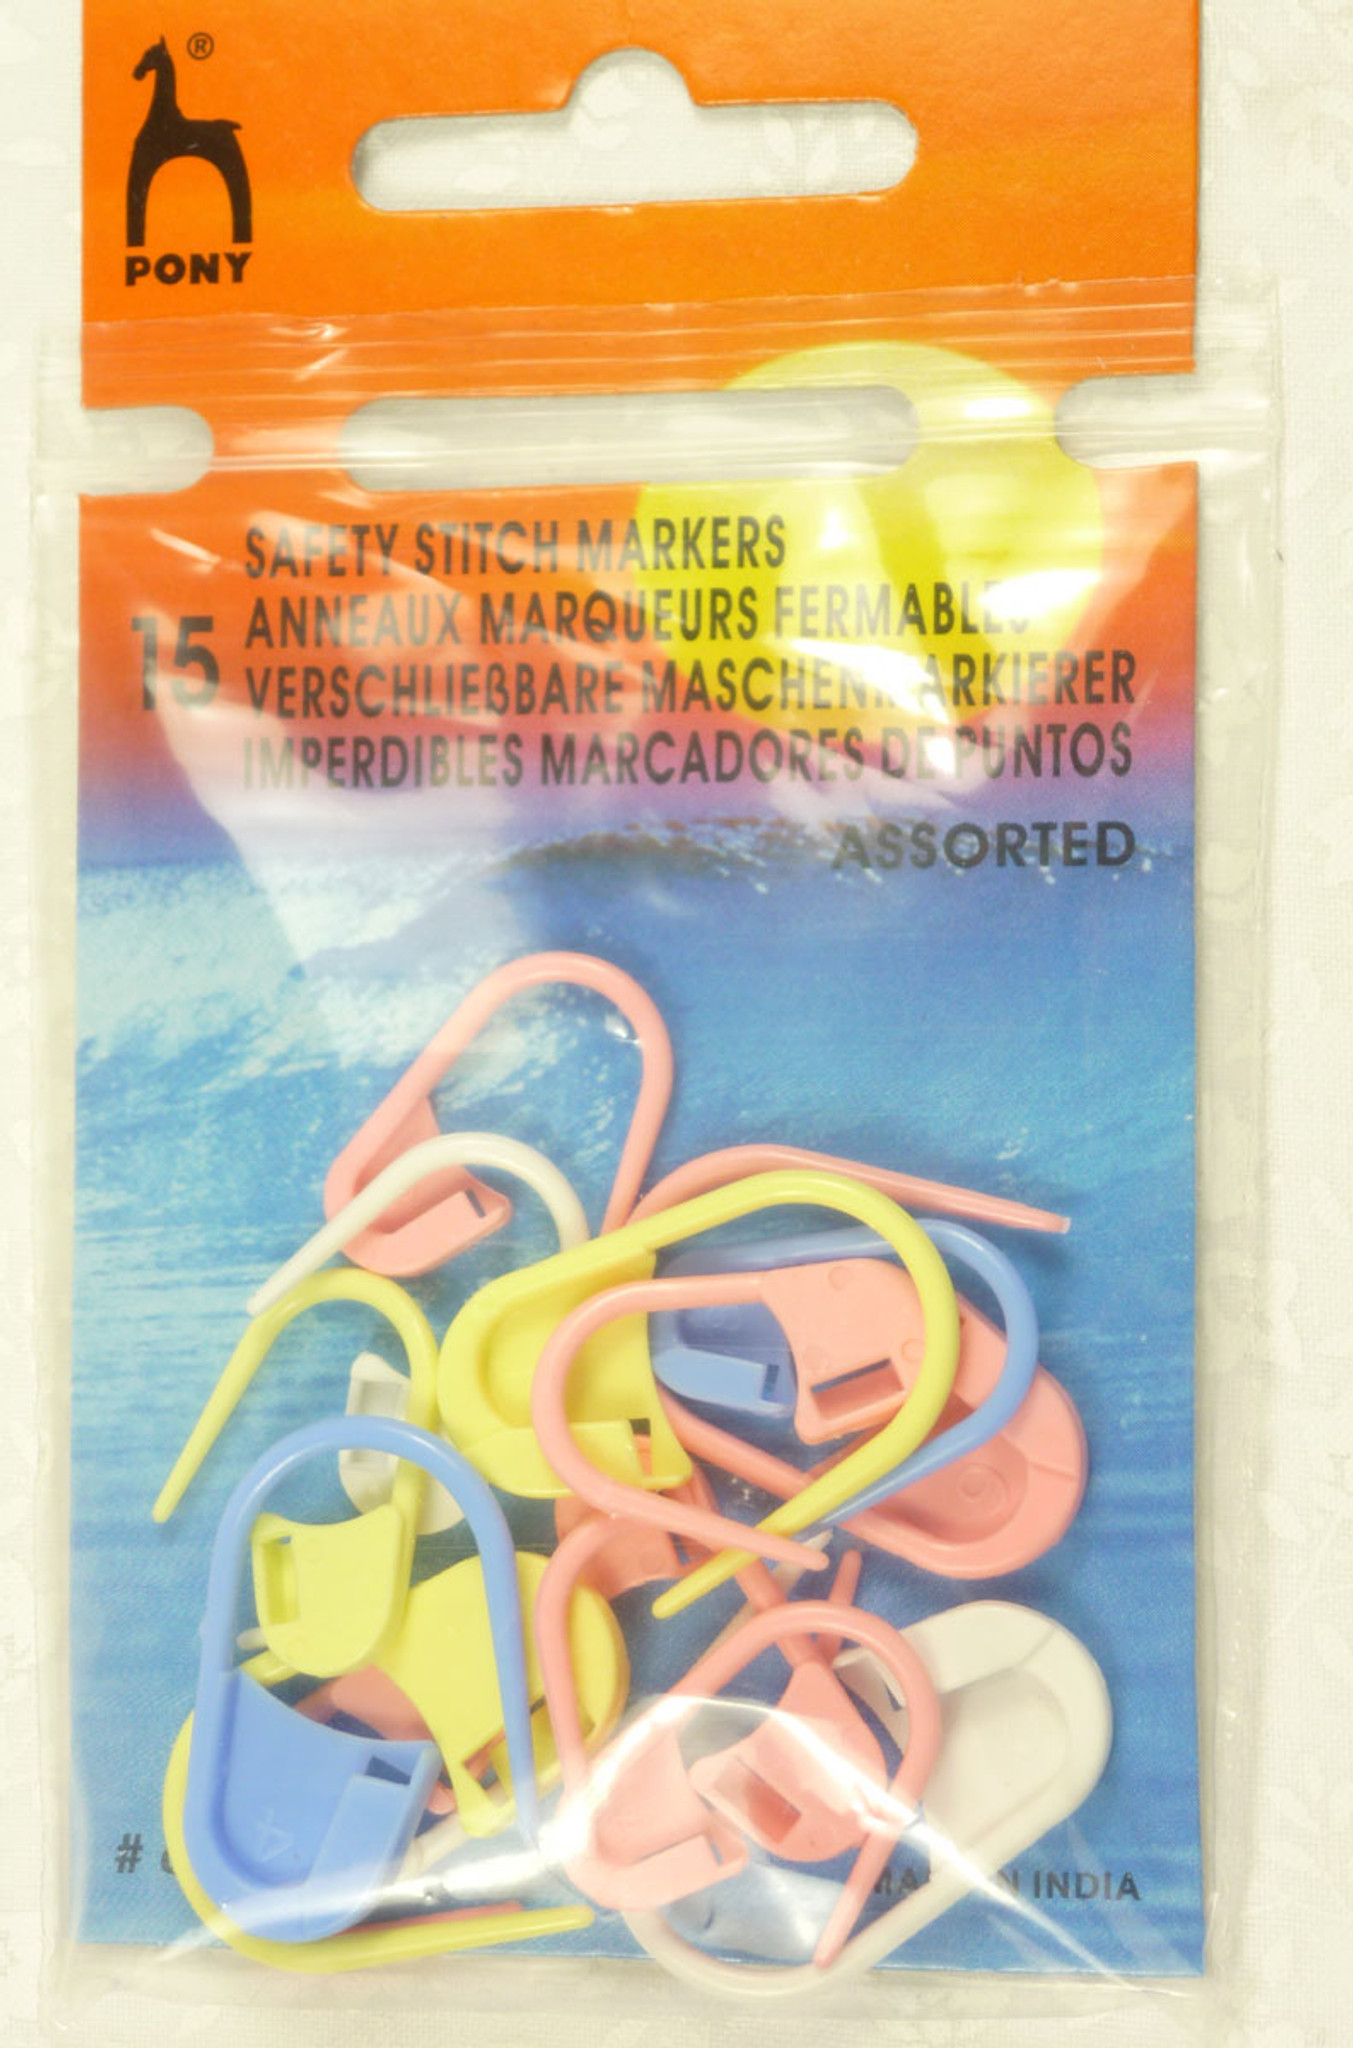 Pony Knitting Safety Locking Stitch Markers Assorted Colours /& Sizes Pack Of 15